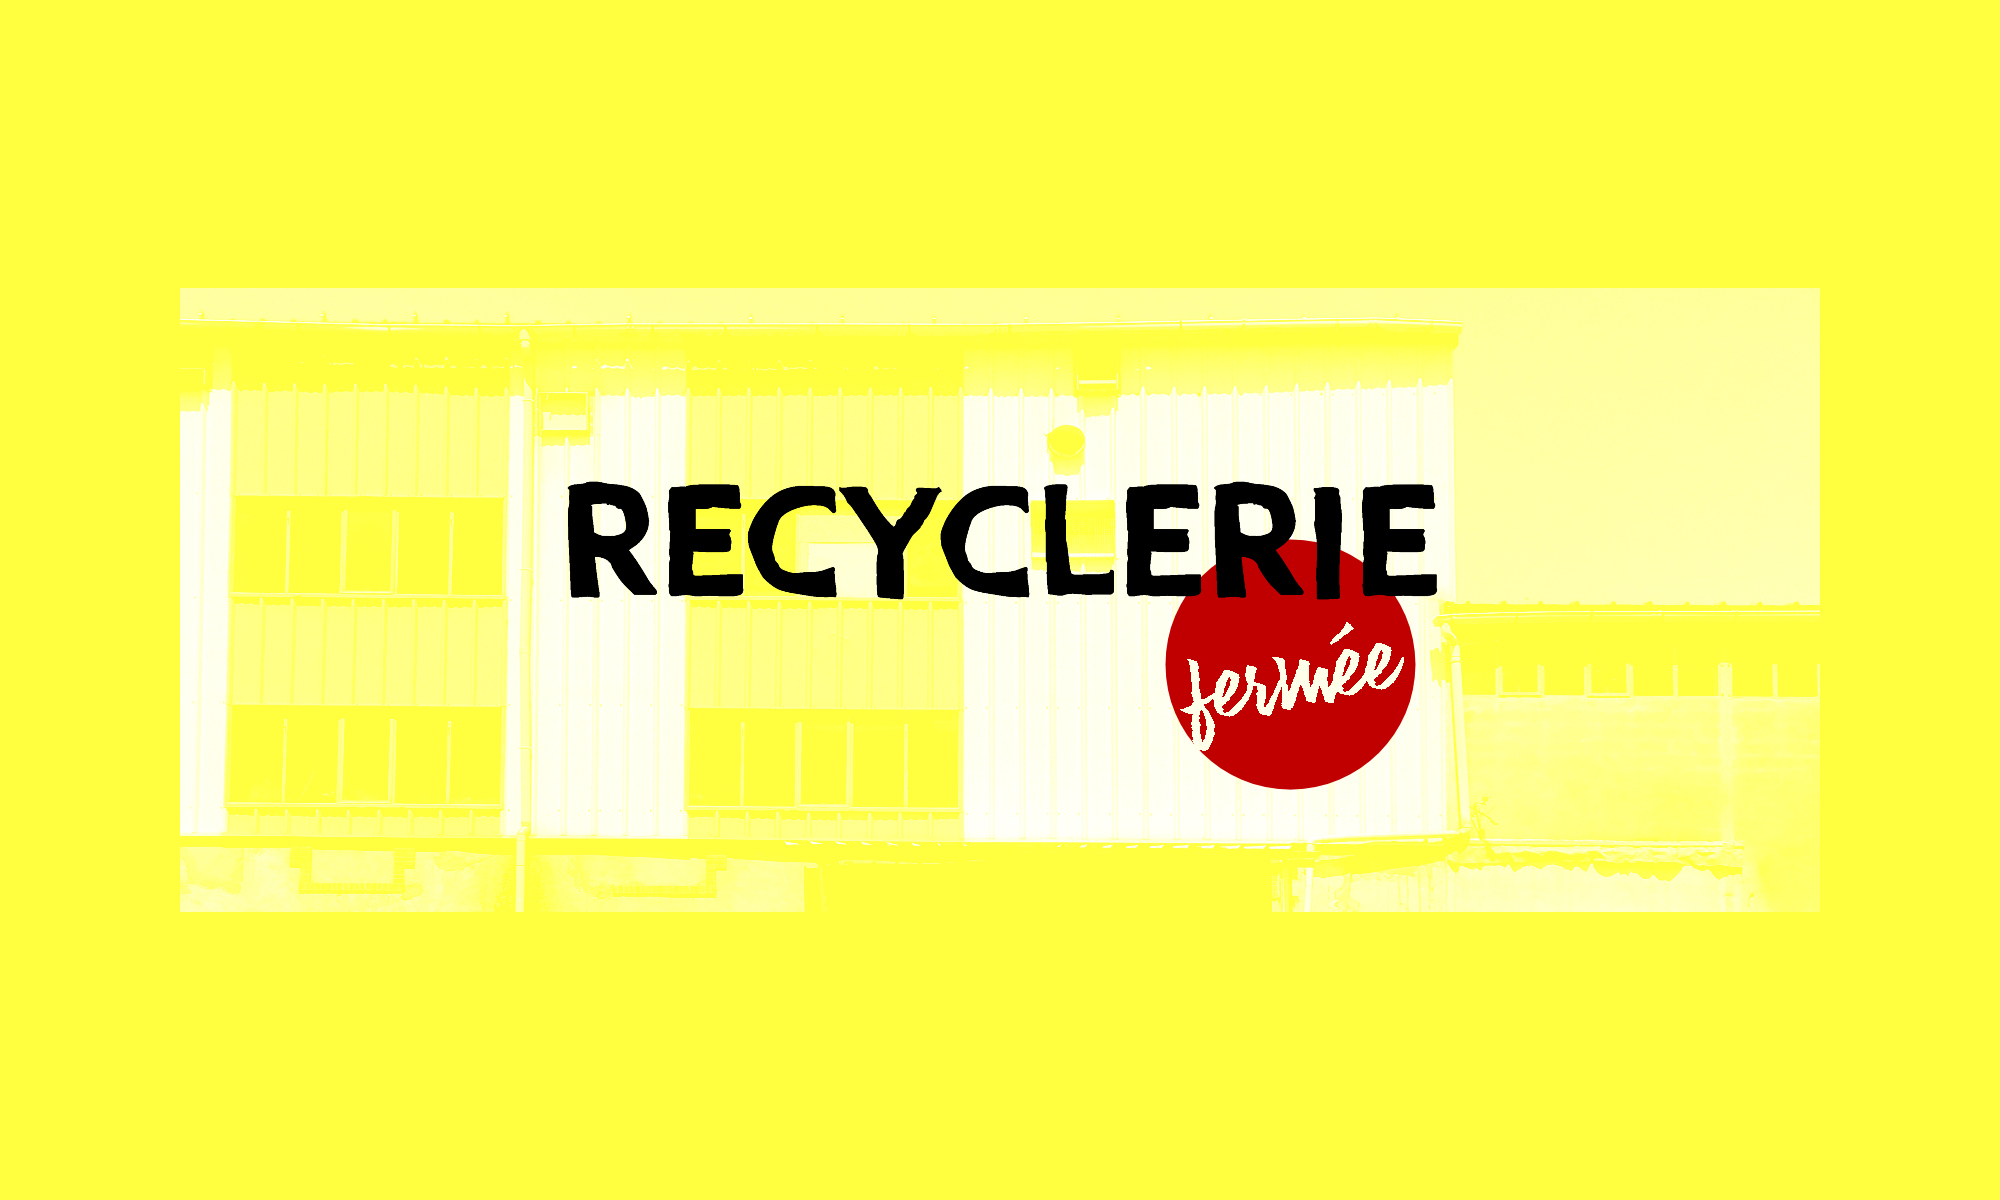 Recyclerie Le Grenier